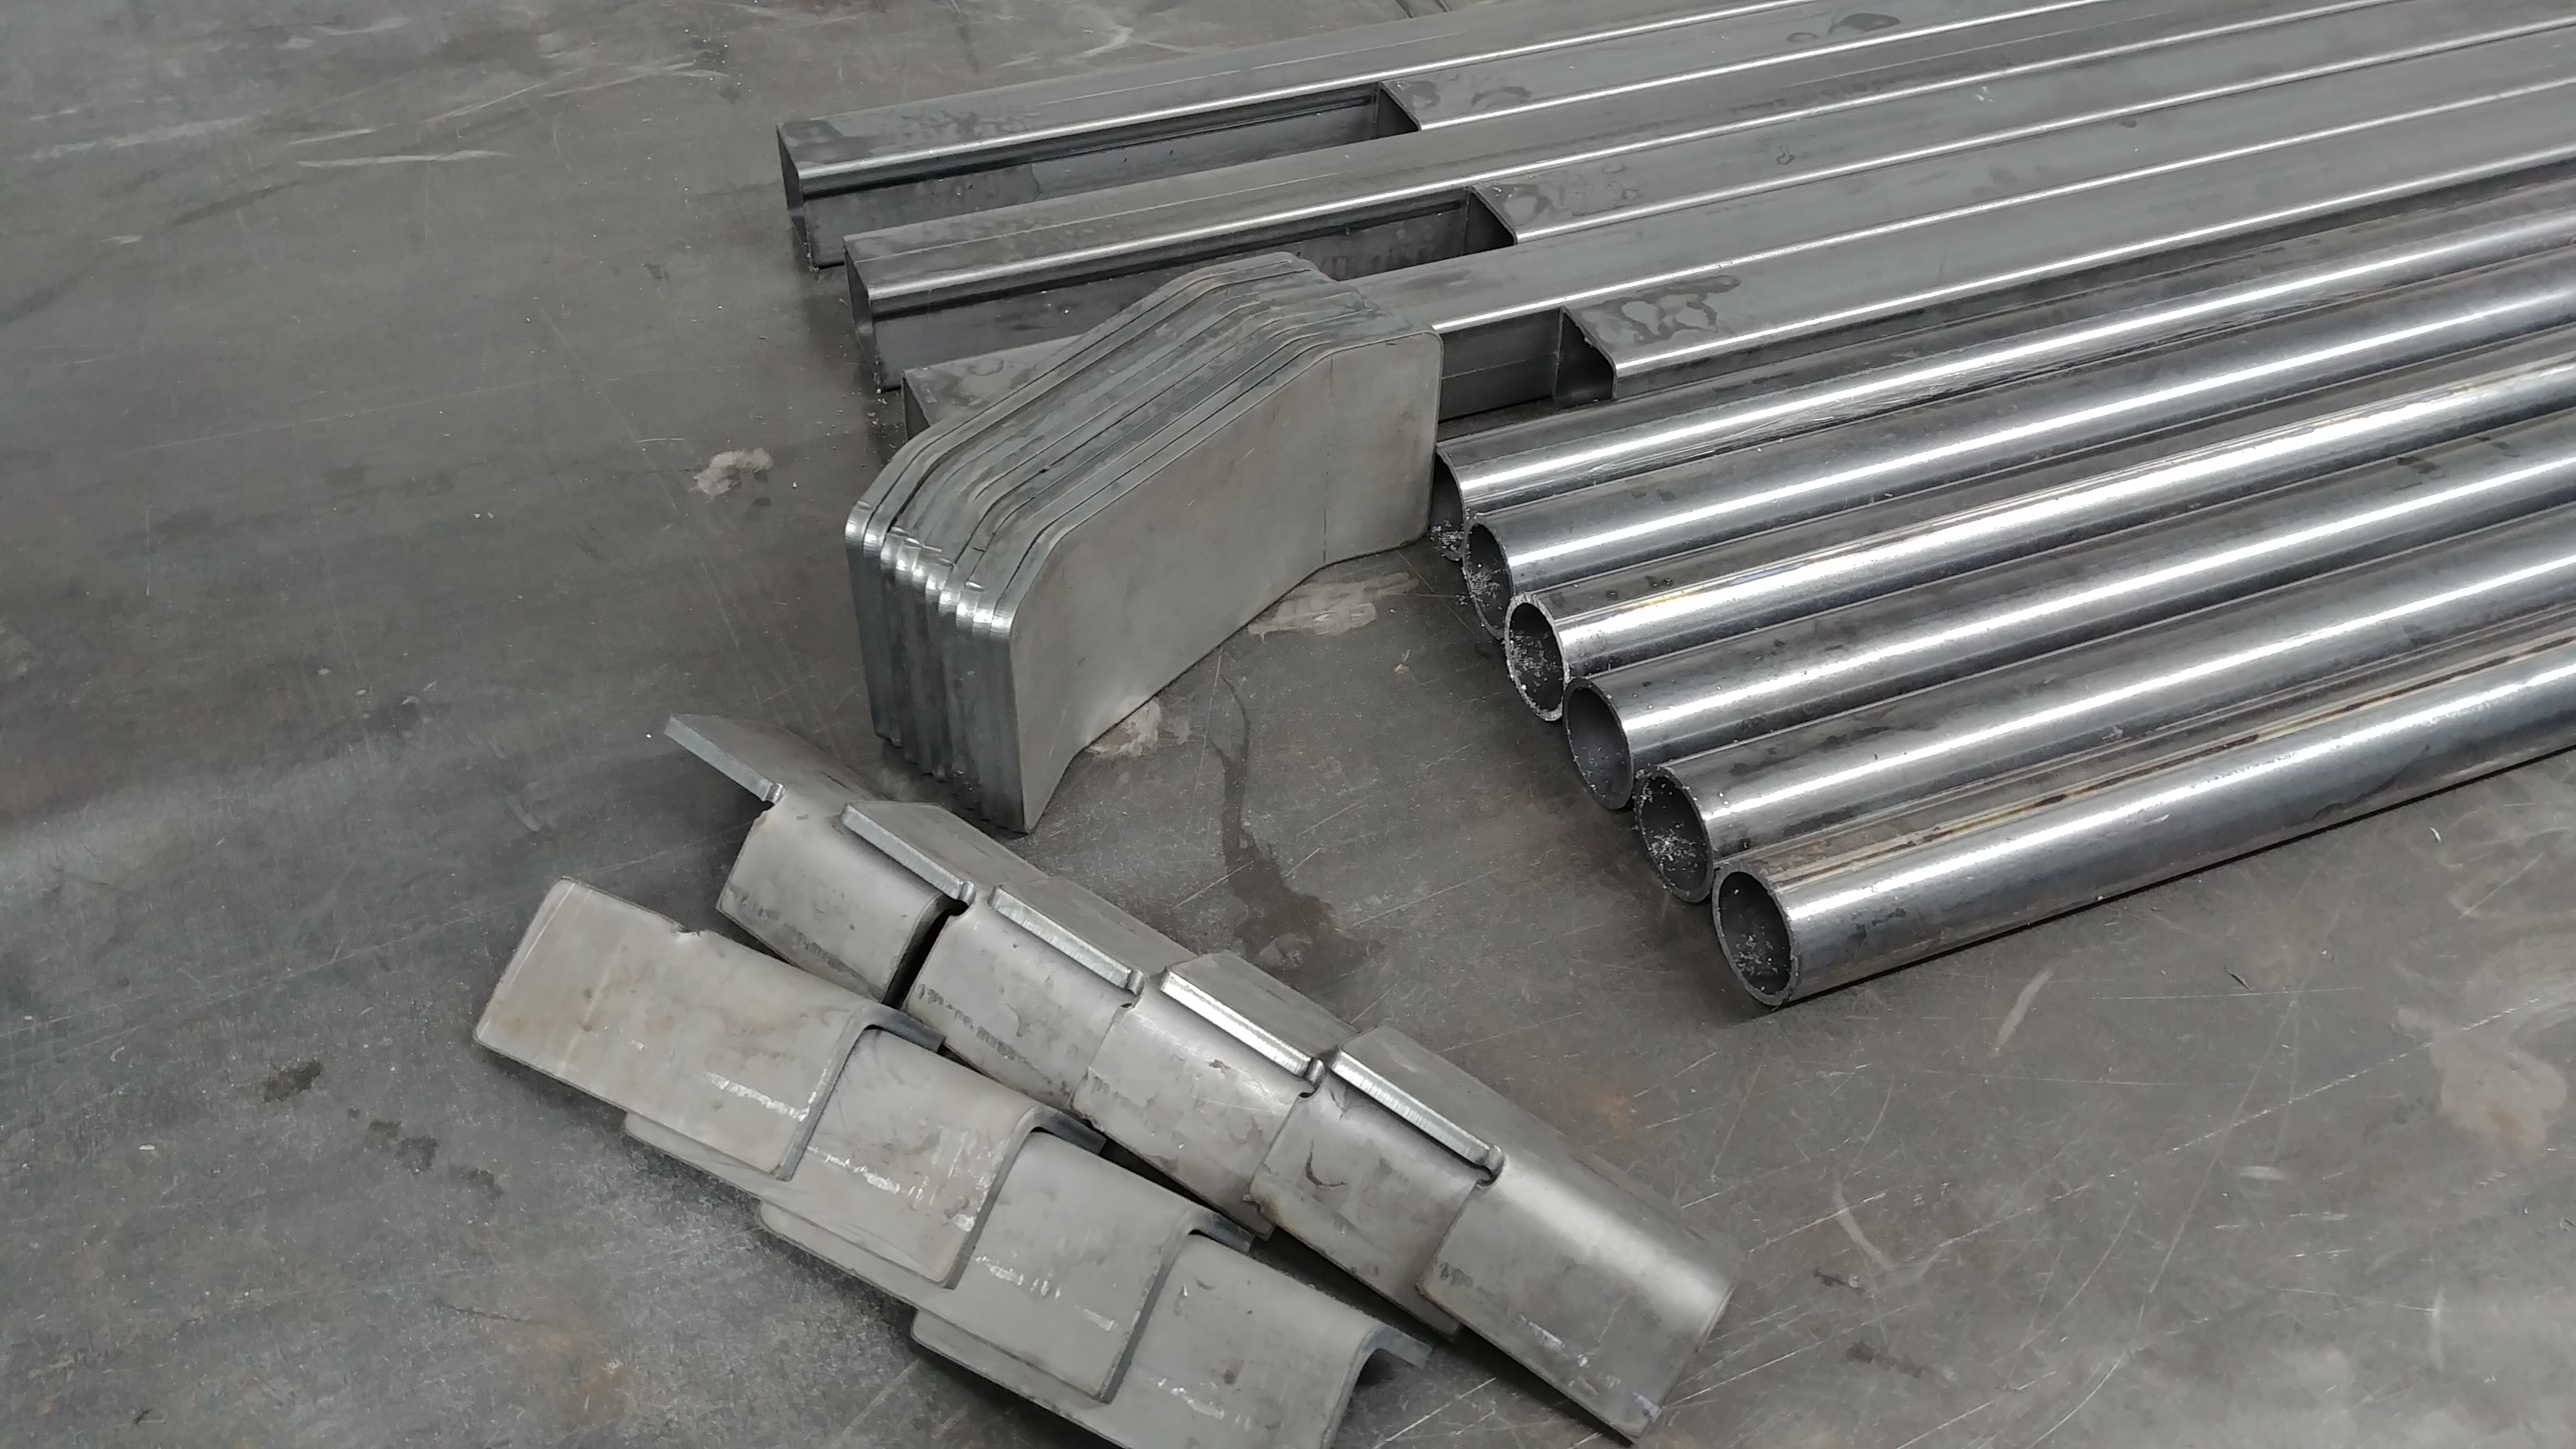 Fabricated parts